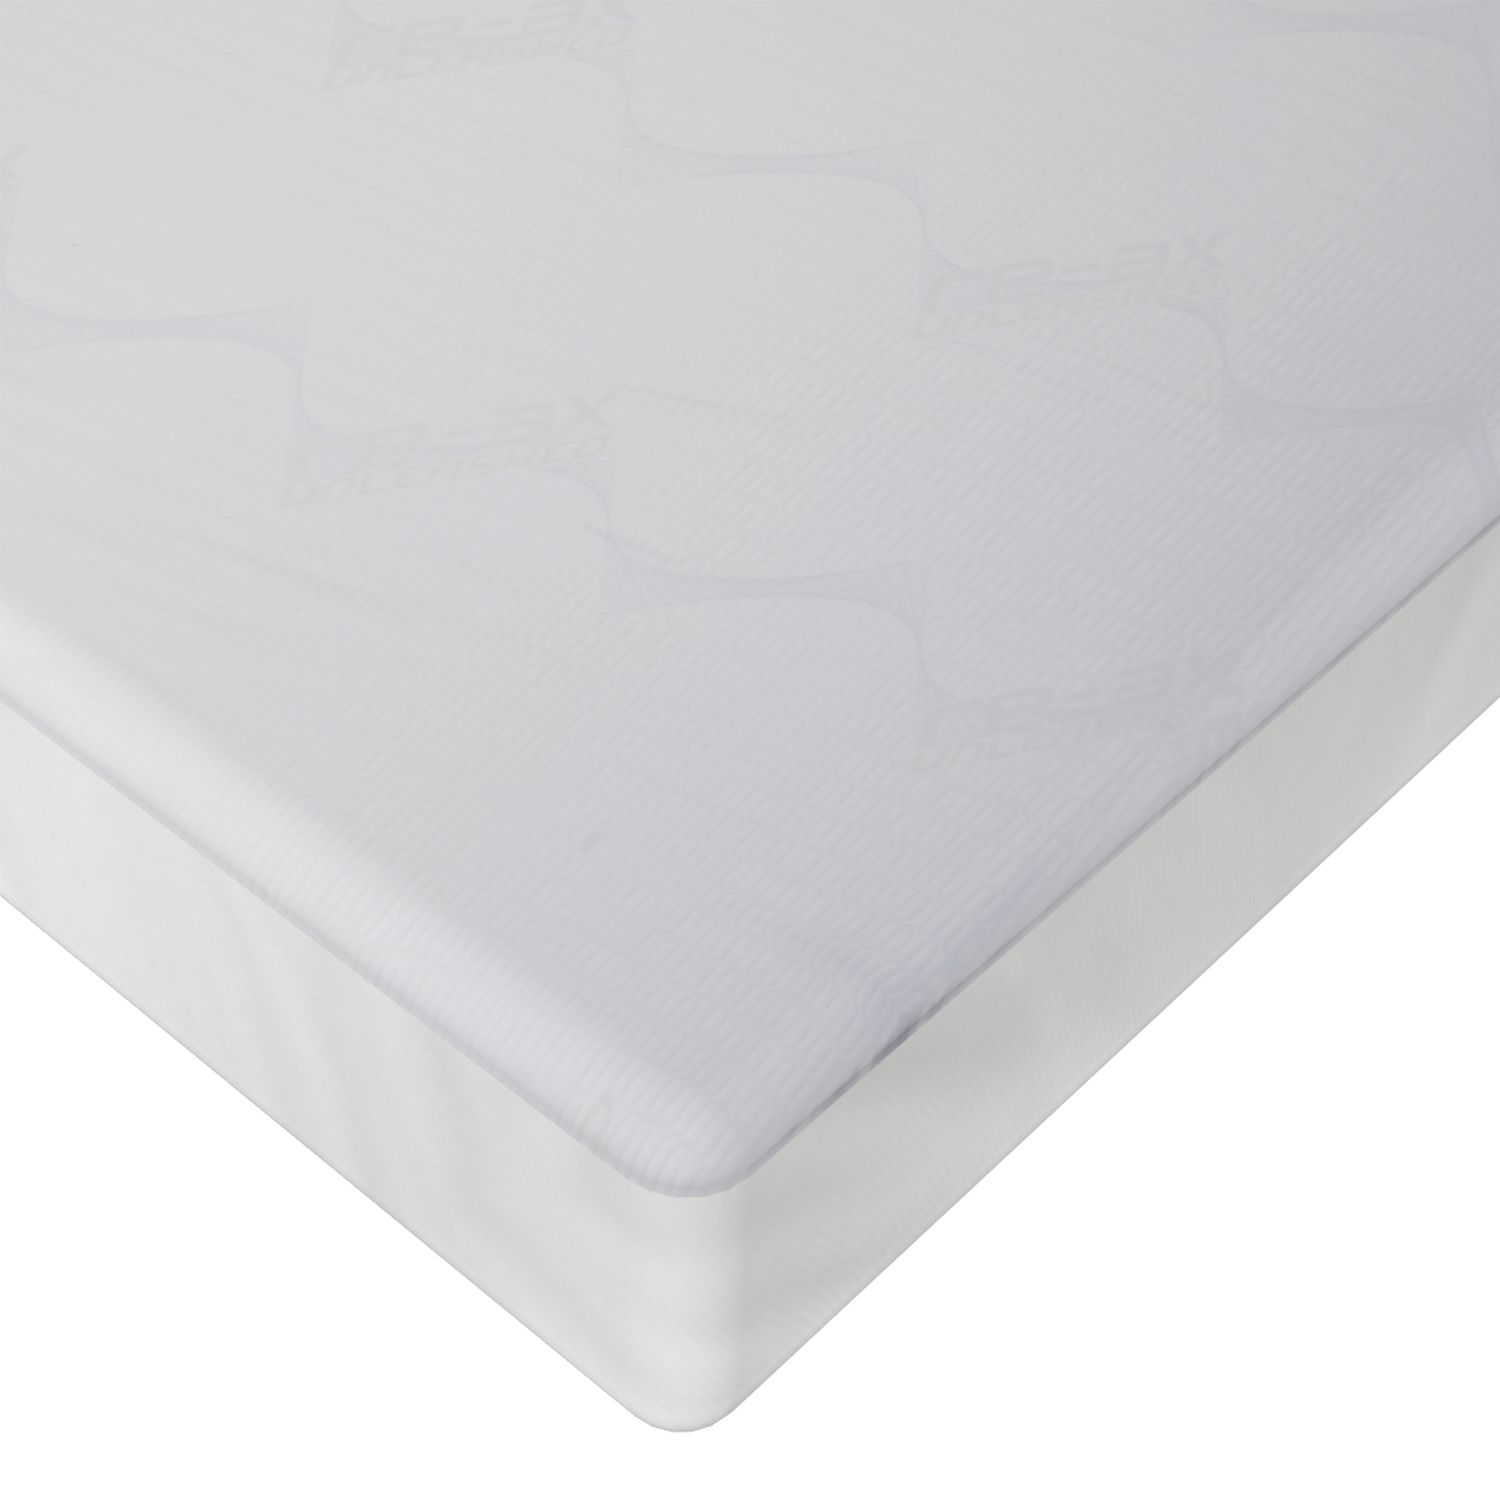 protectabed remfit energize 200 series fitted sheet mattress protector